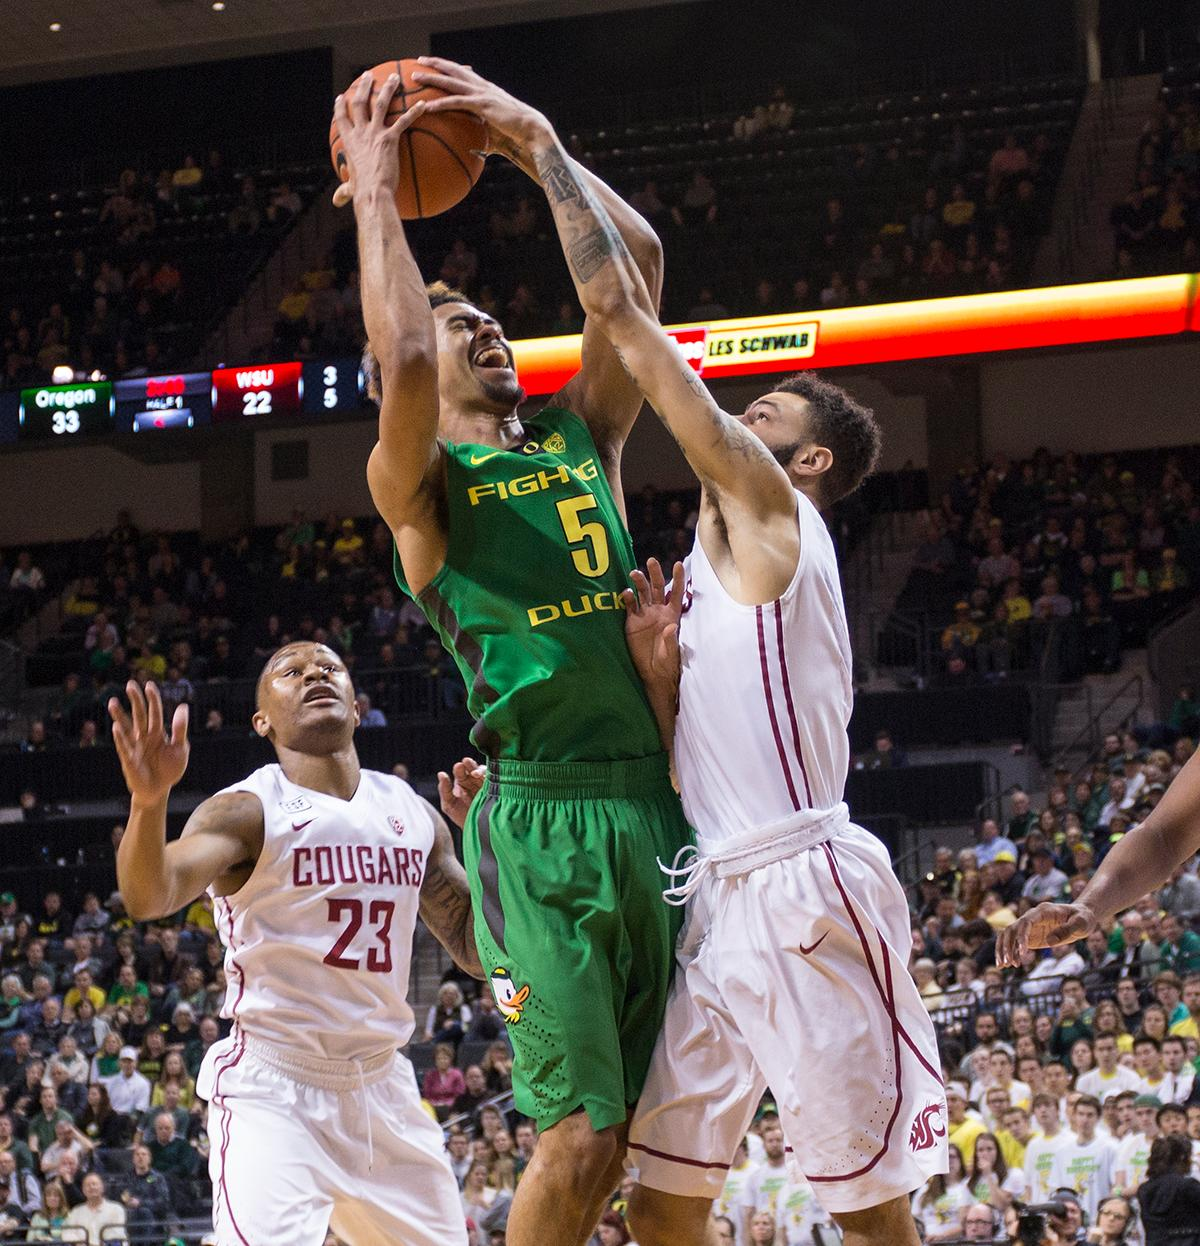 A Washington State Cougars' player defends against the Oregon Ducks' Tyler Dorsey (#5). The Ducks beat the Cougars 76-62. Kianna Cabuco, Oregon News Lab